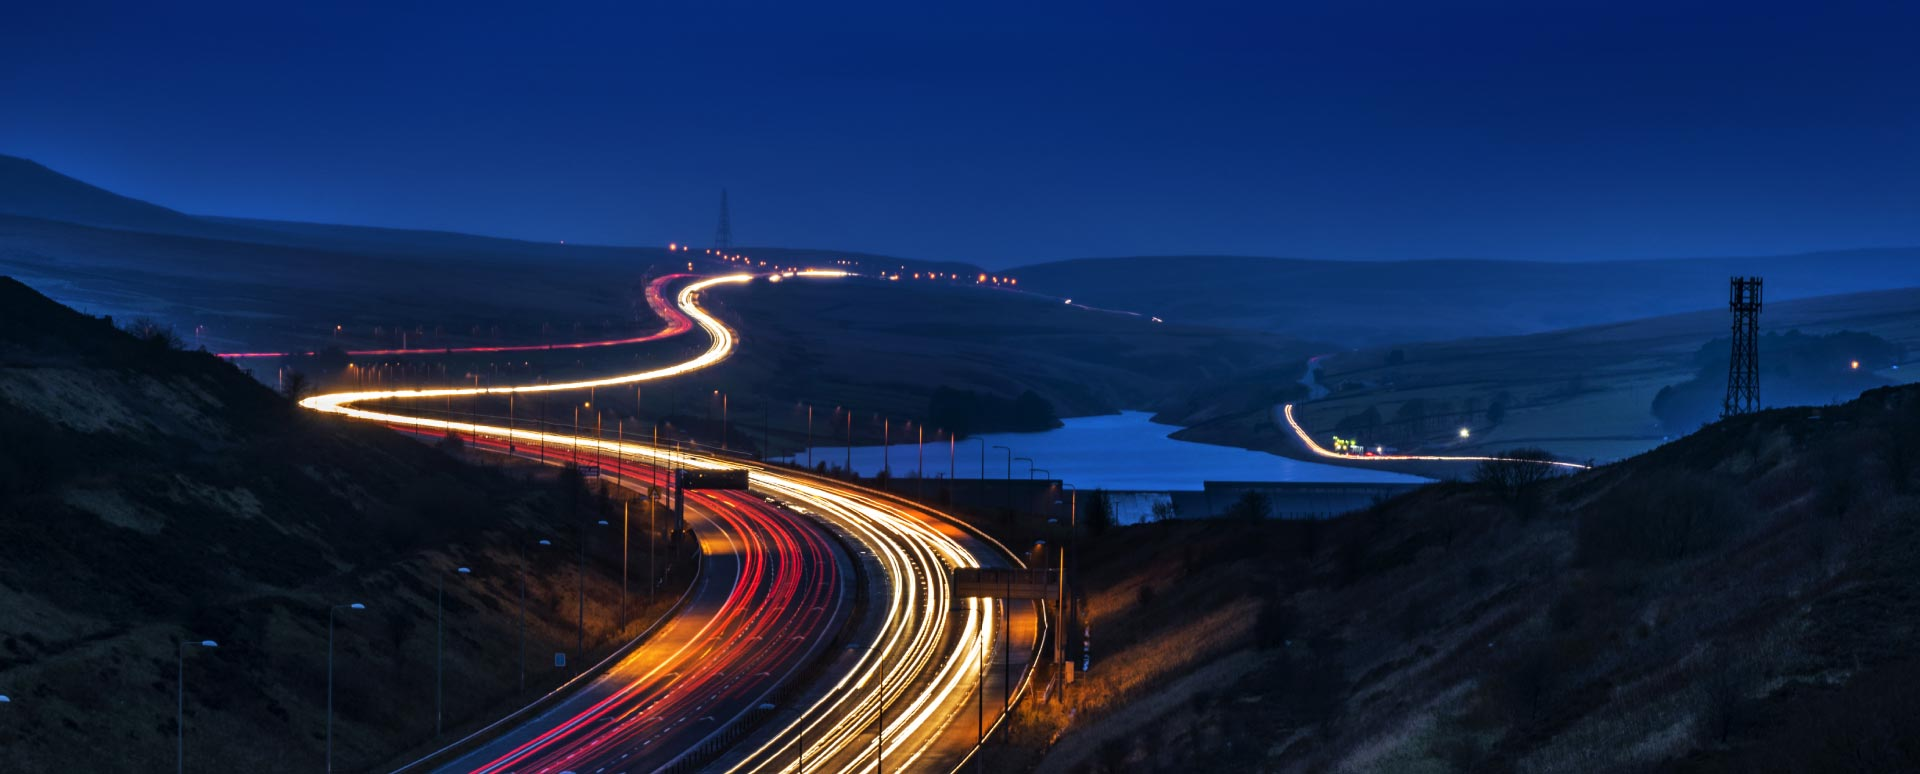 Scenic view of the roads at night